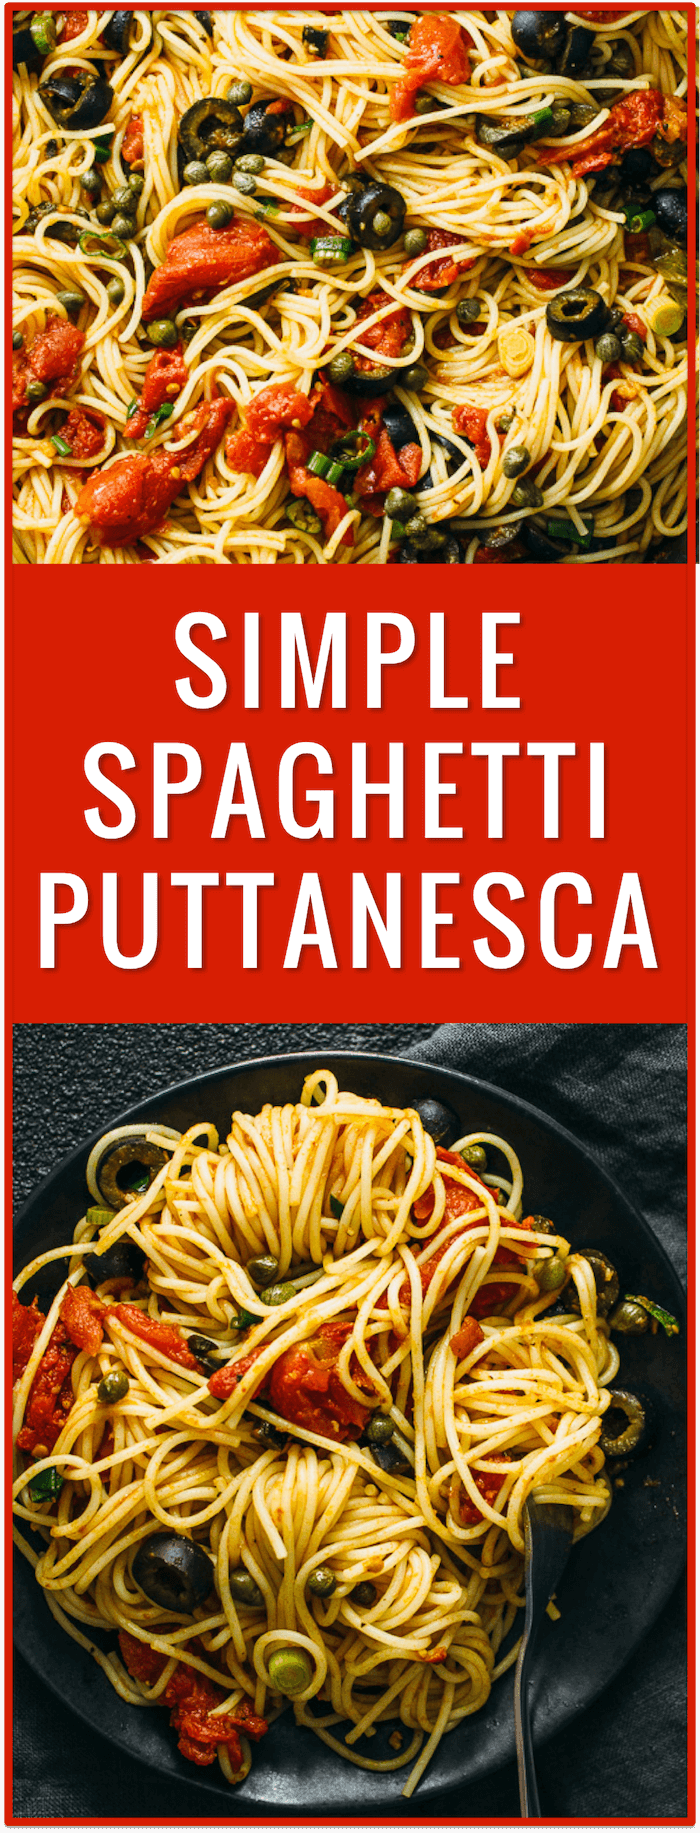 easy pasta dinner recipe, spaghetti puttanesca, spaghetti alla puttanesca, puttanesca sauce, noodles, angel hair, cold, hot, healthy, simple